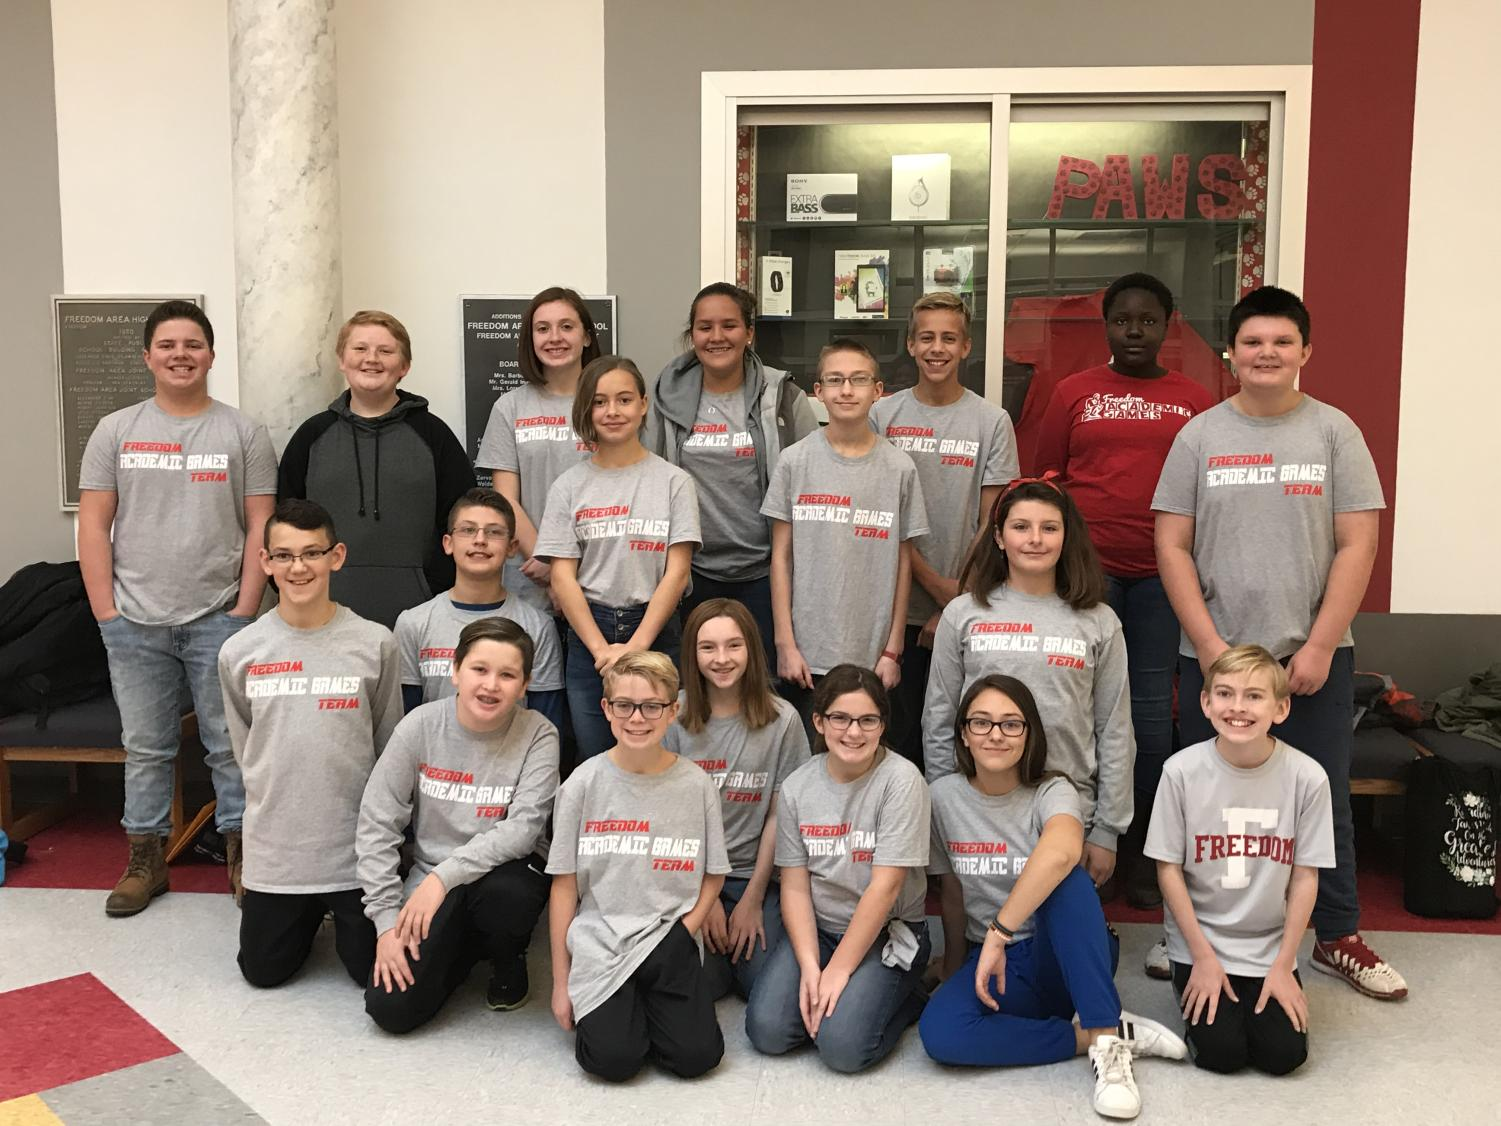 The Freedom Middle School Academic Games team waits in the lobby for their bus before departing for the Propaganda competition at Geneva College on Nov. 15.